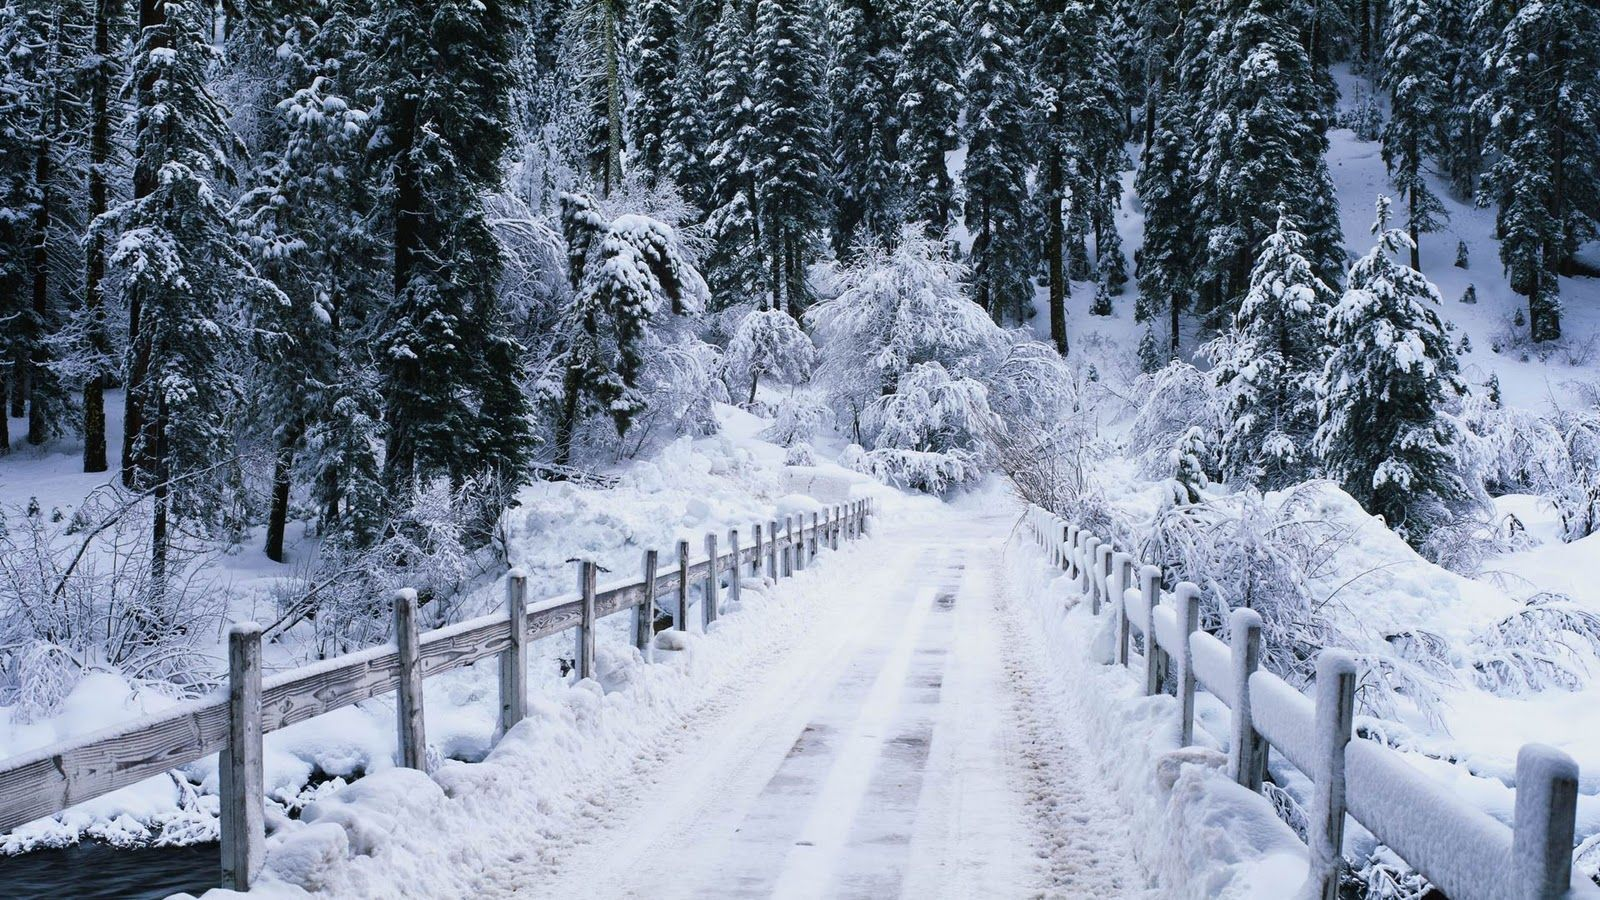 Snow Wallpapers 2 Winter Scenes Winter Forest Christmas Snow